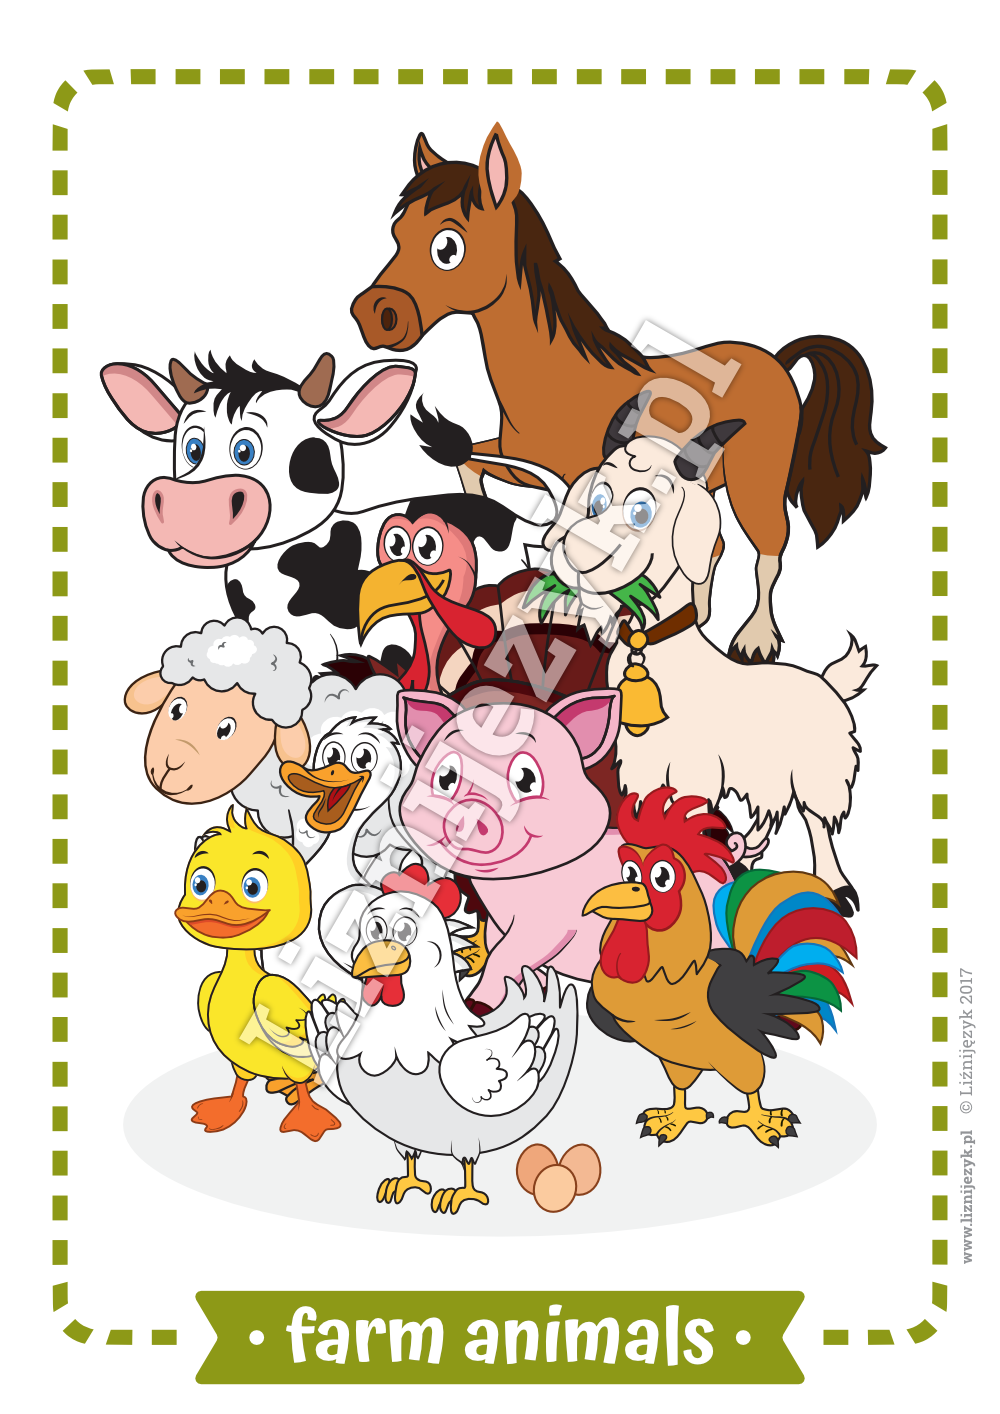 Farm Animals English Flashcards Farm animals, Animal